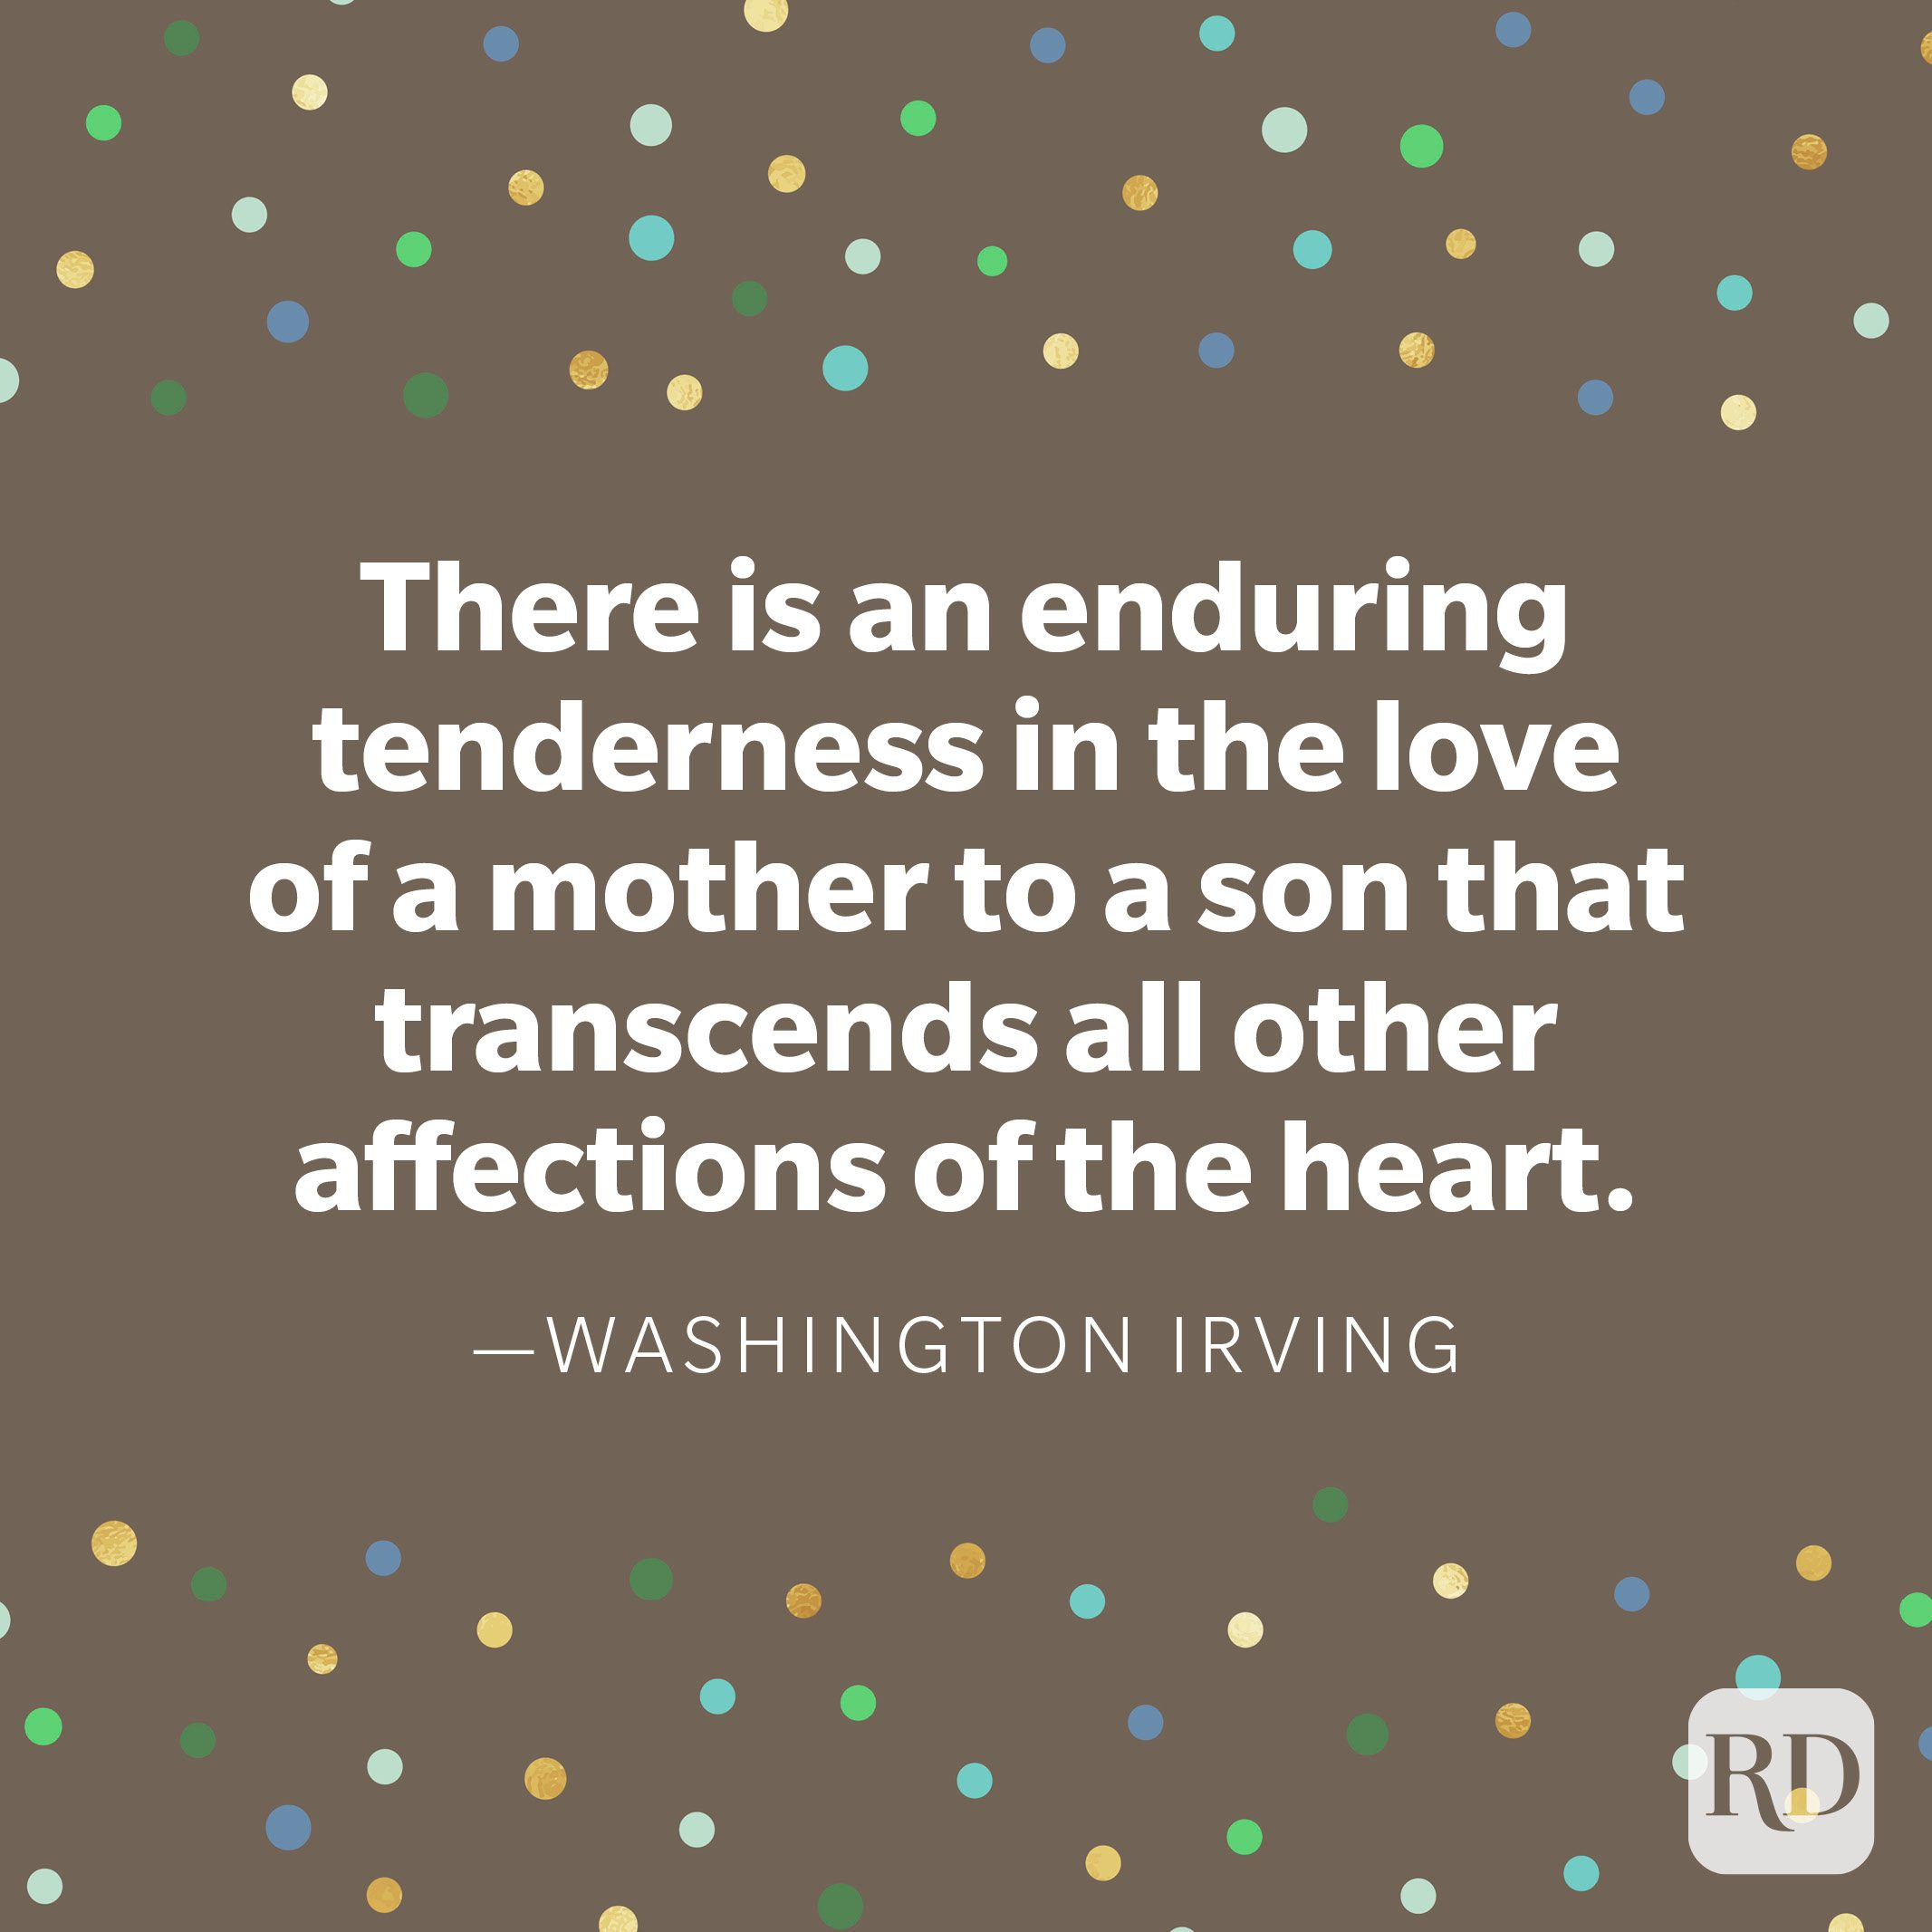 """There is an enduring tenderness in the love of a mother to a son that transcends all other affections of the heart."" —Washington Irving"